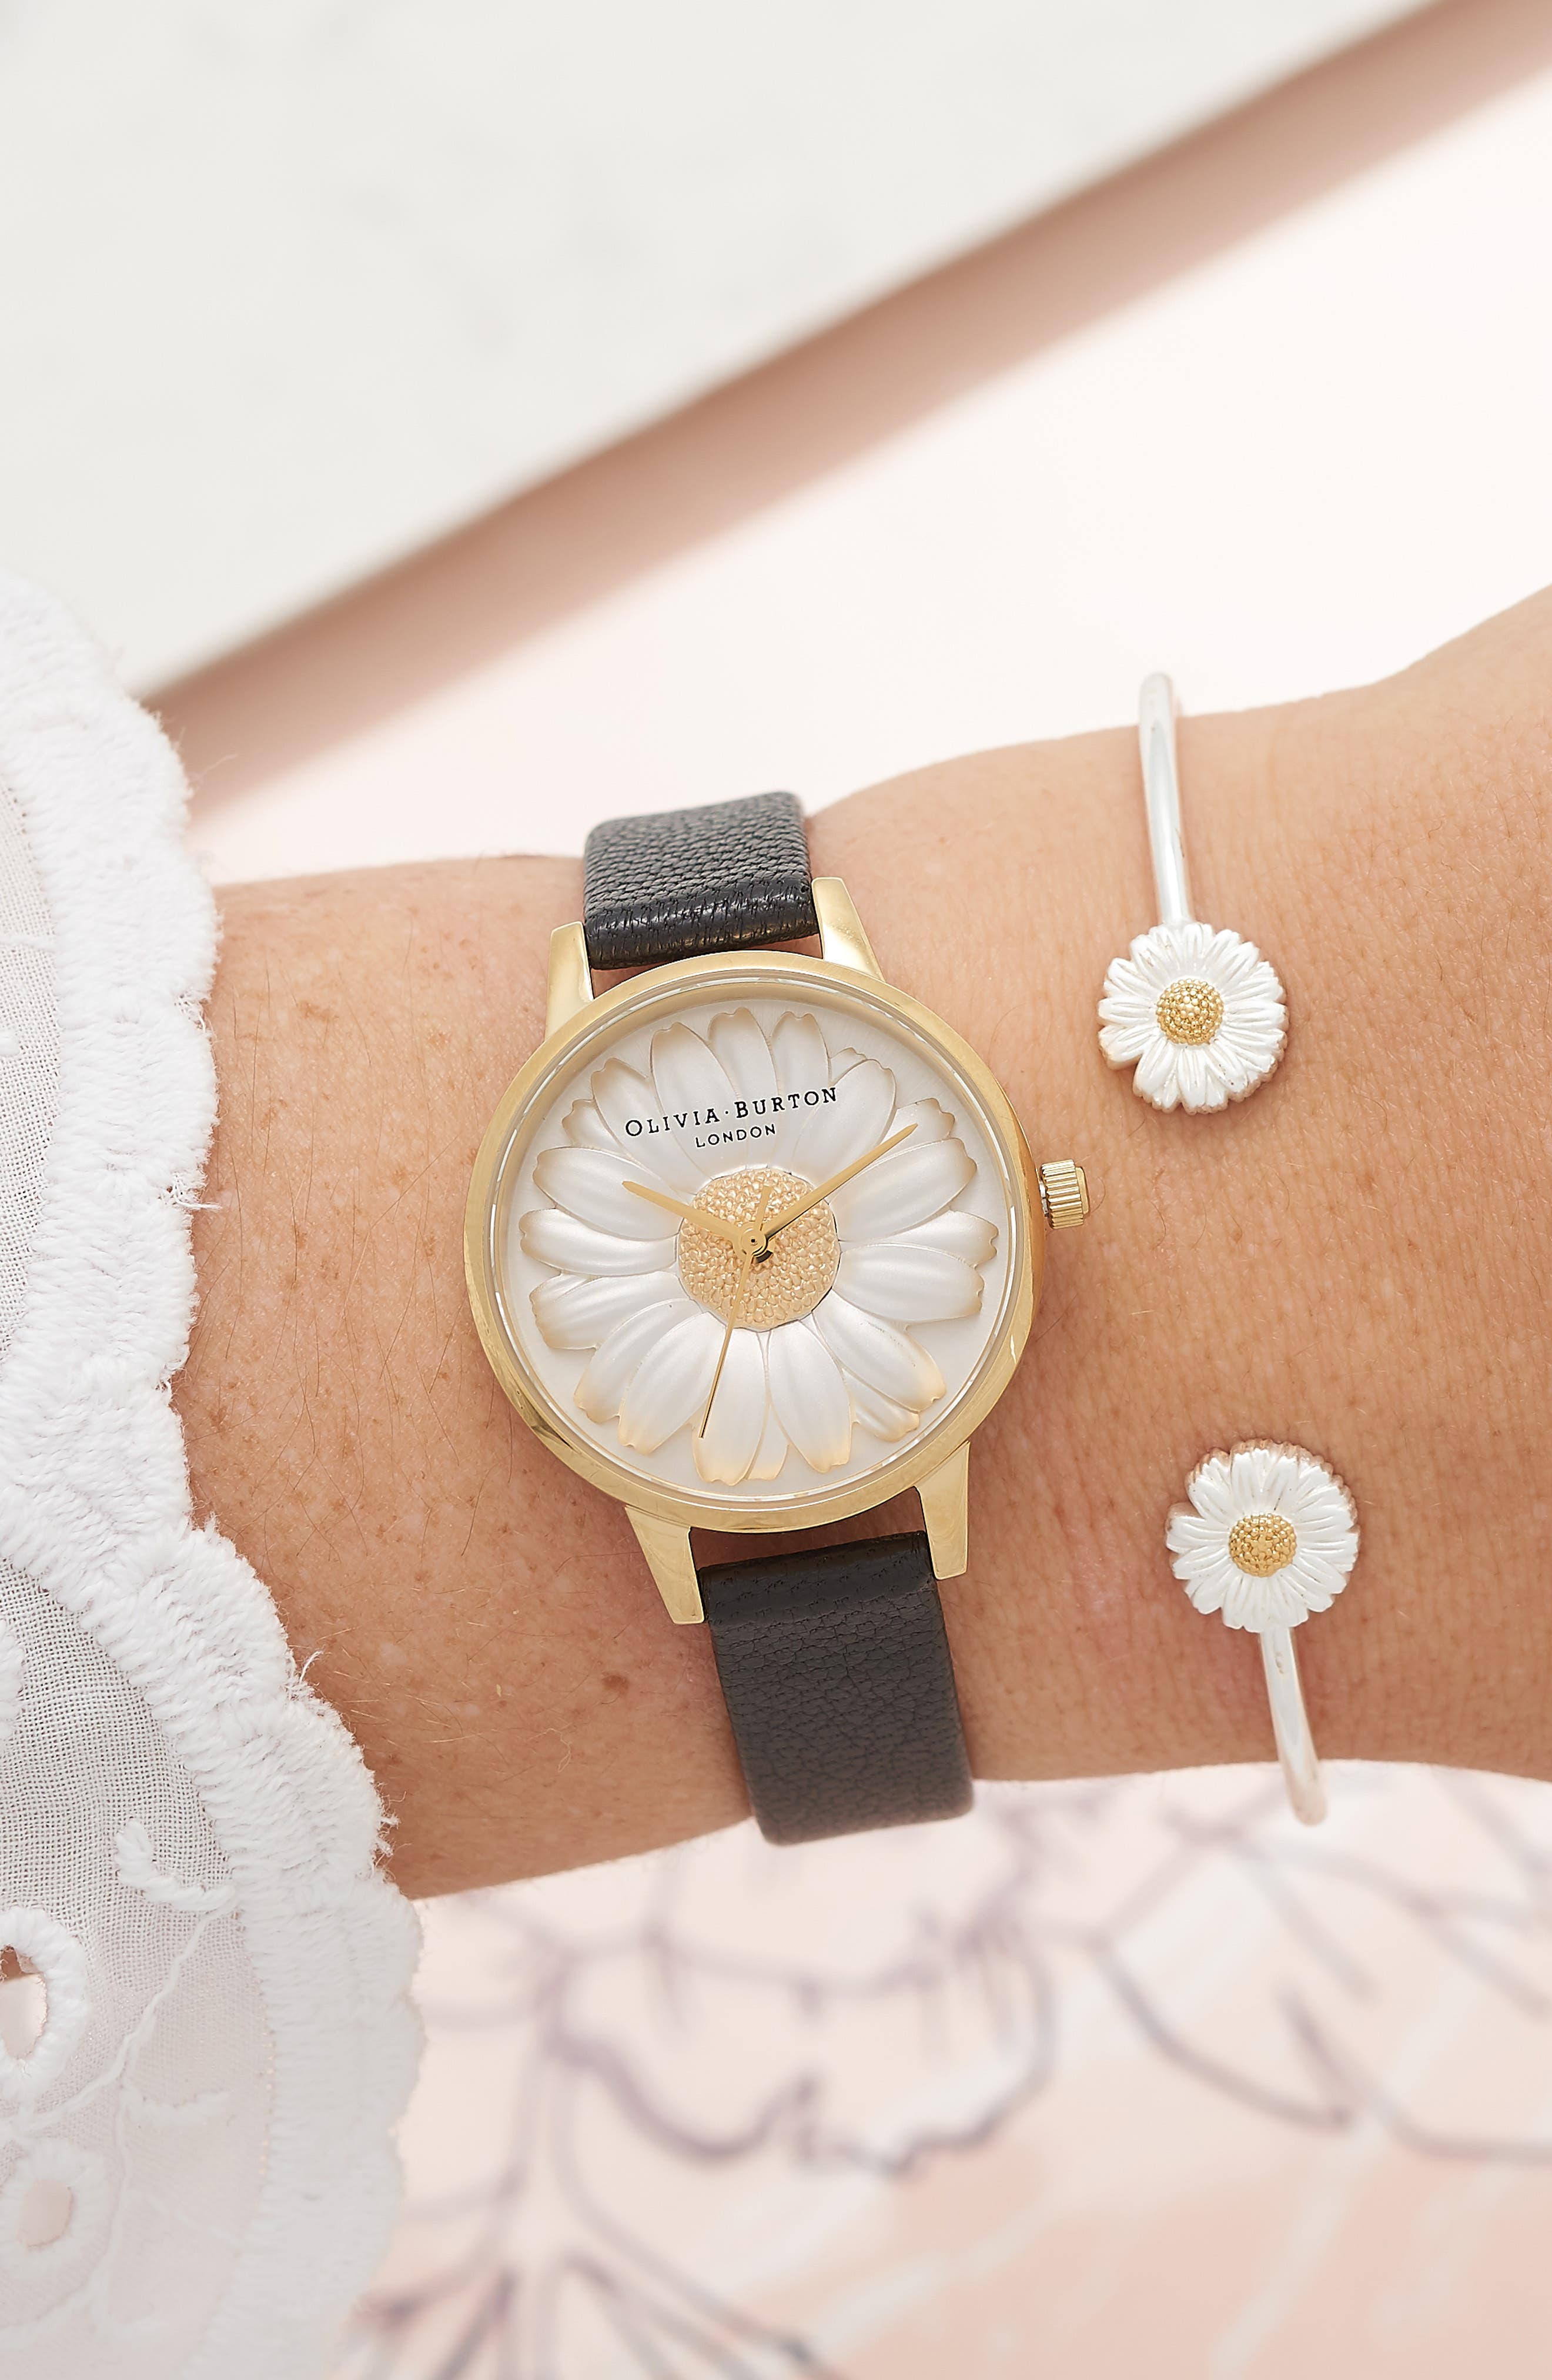 3D Daisy Leather Strap Watch, 30mm,                             Alternate thumbnail 9, color,                             BLACK/ GOLD